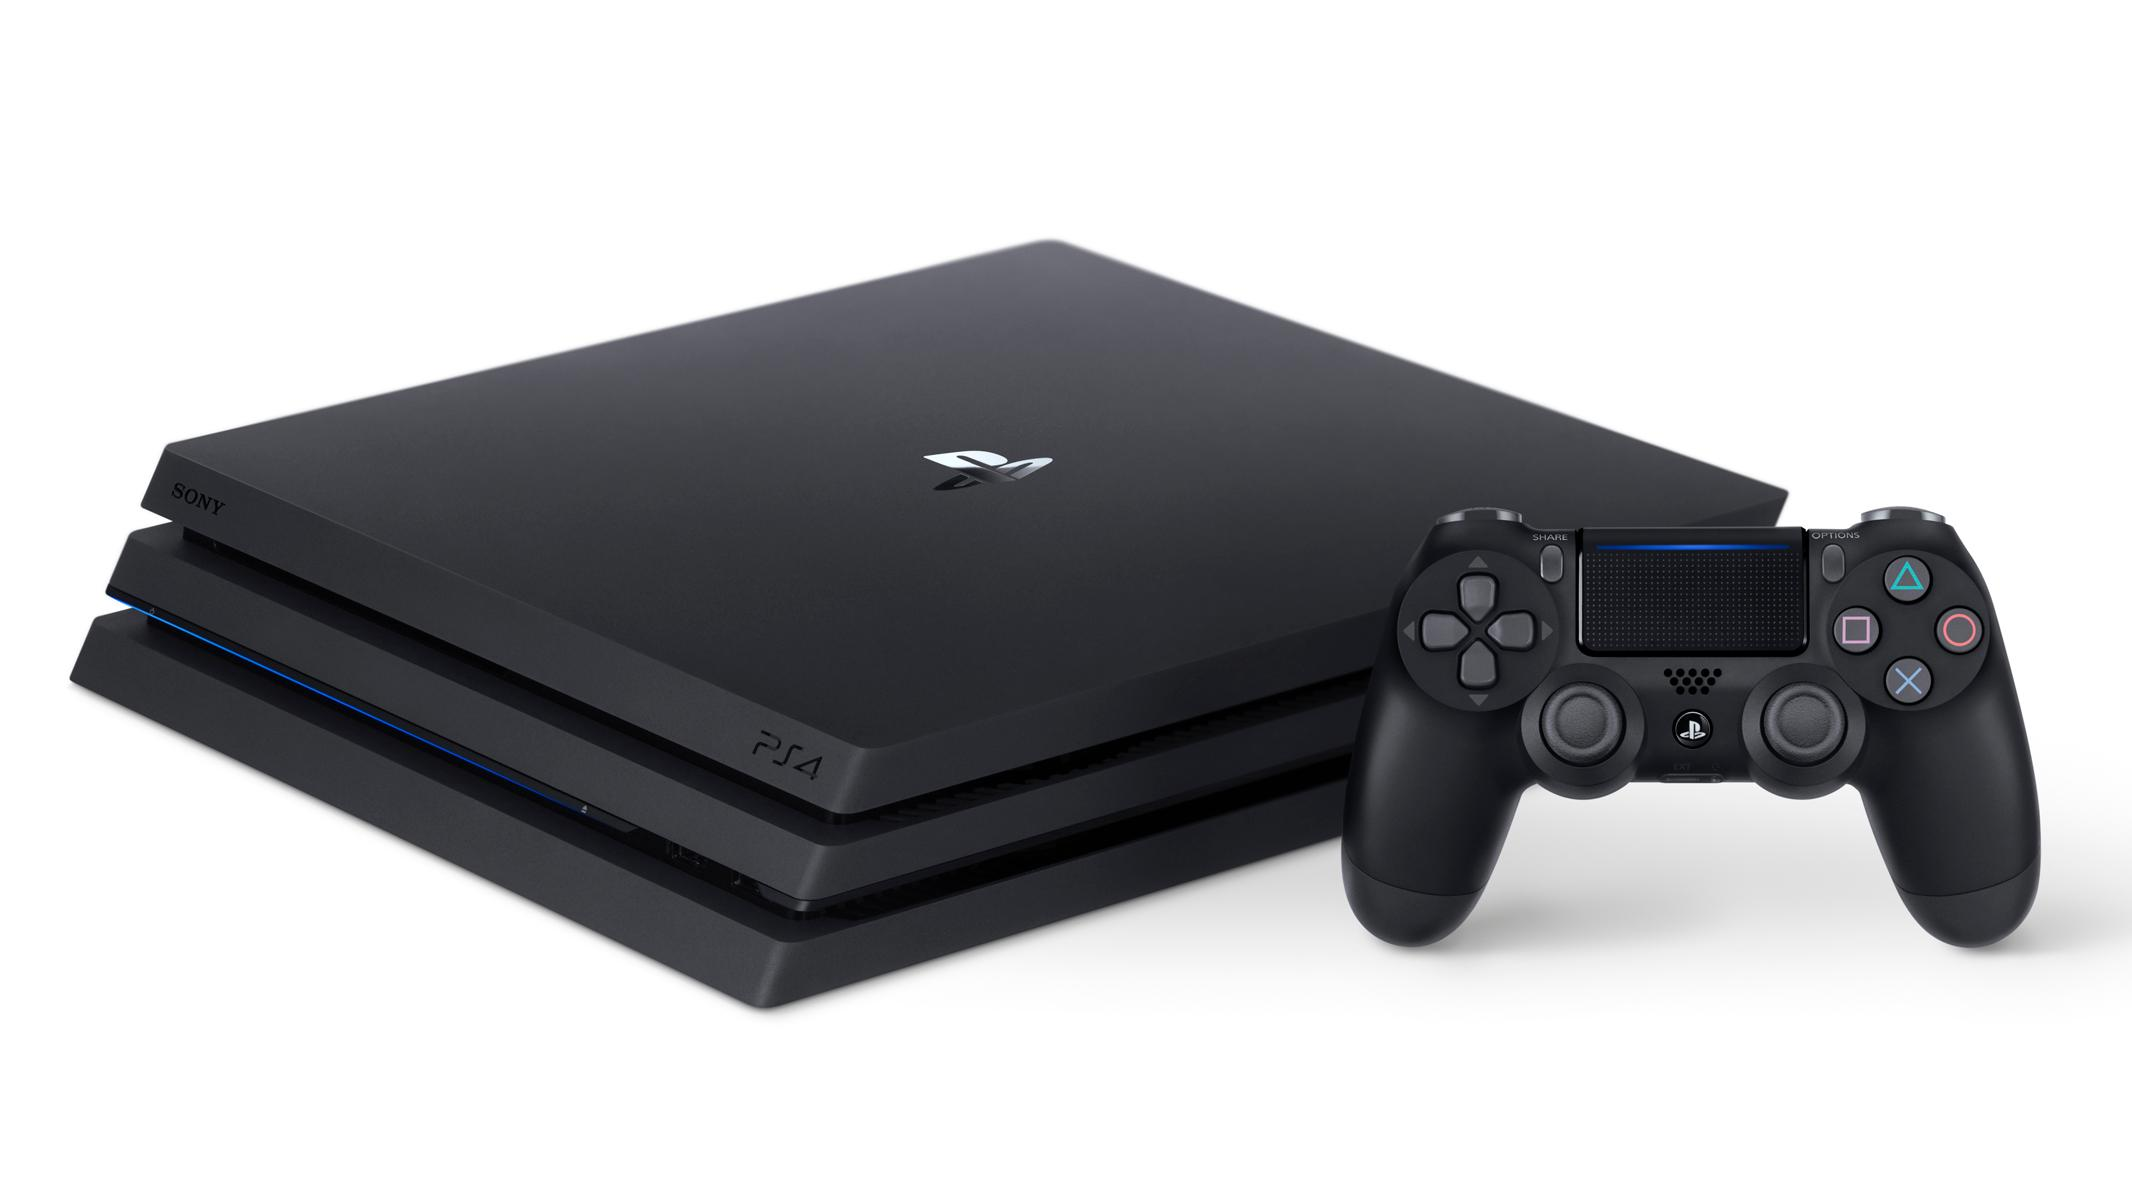 Sony PlayStation 4 Pro 1 TB, Black: Amazon.co.uk: PC